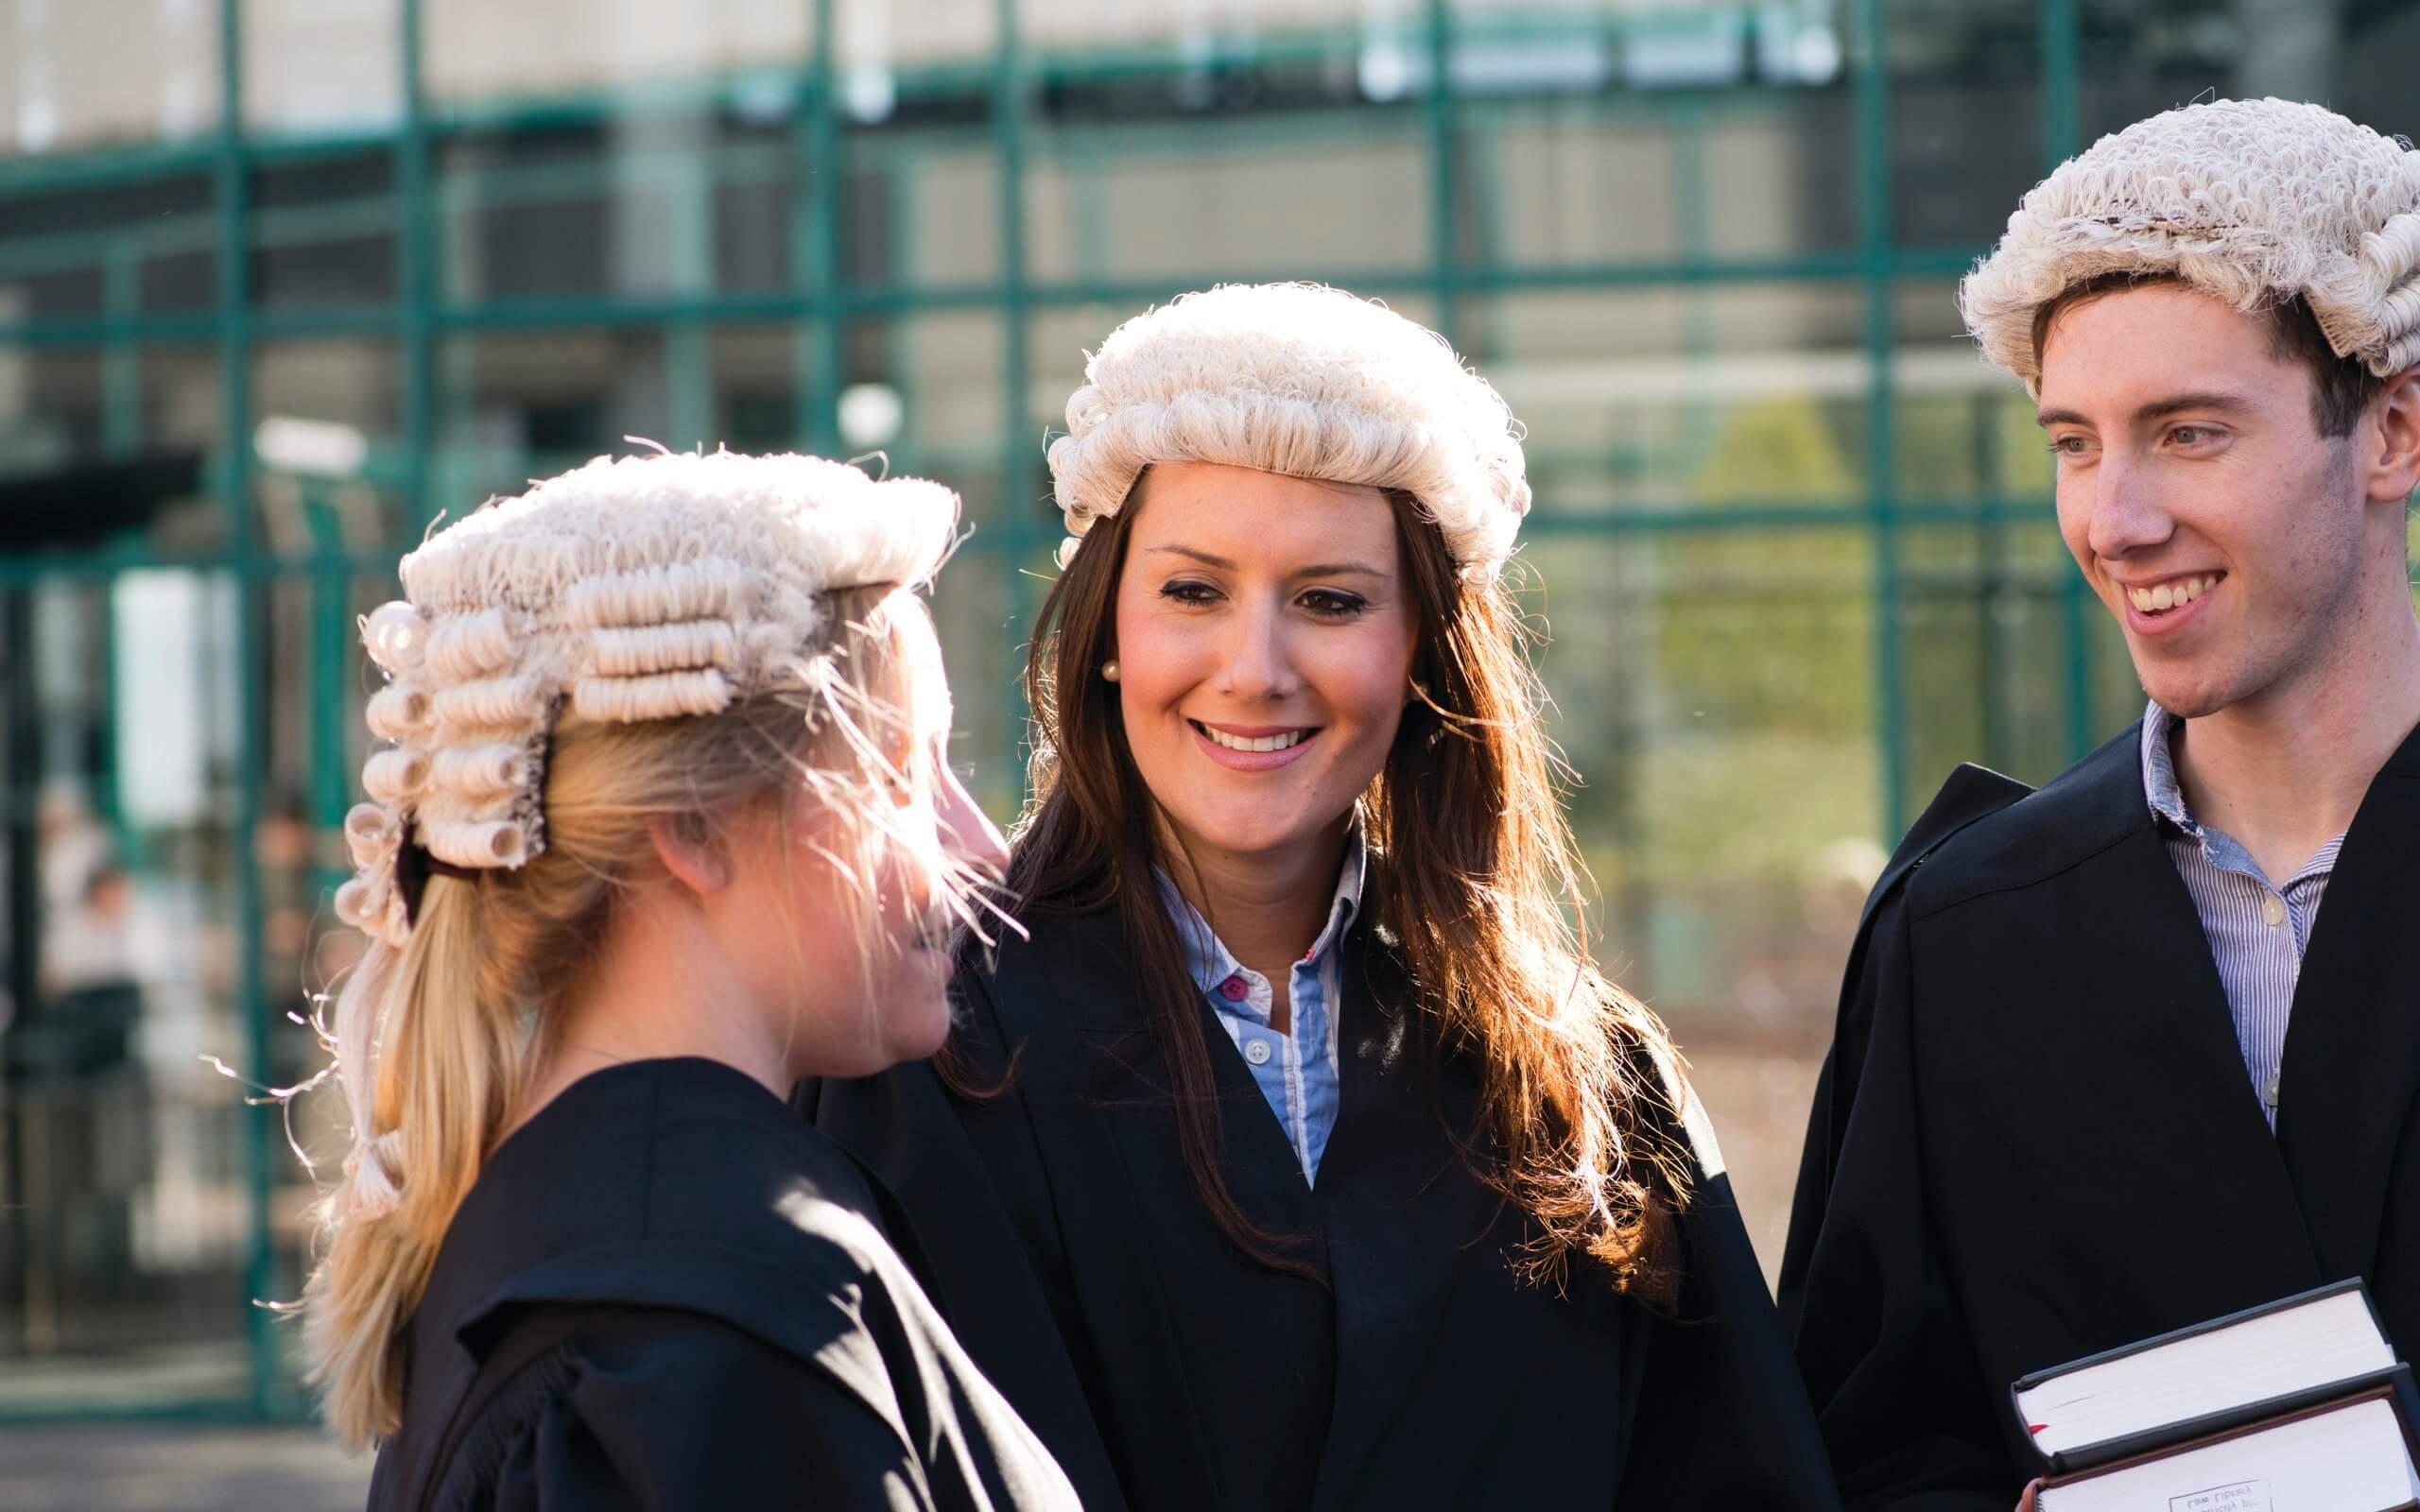 3 law students in legal court dress with legal books